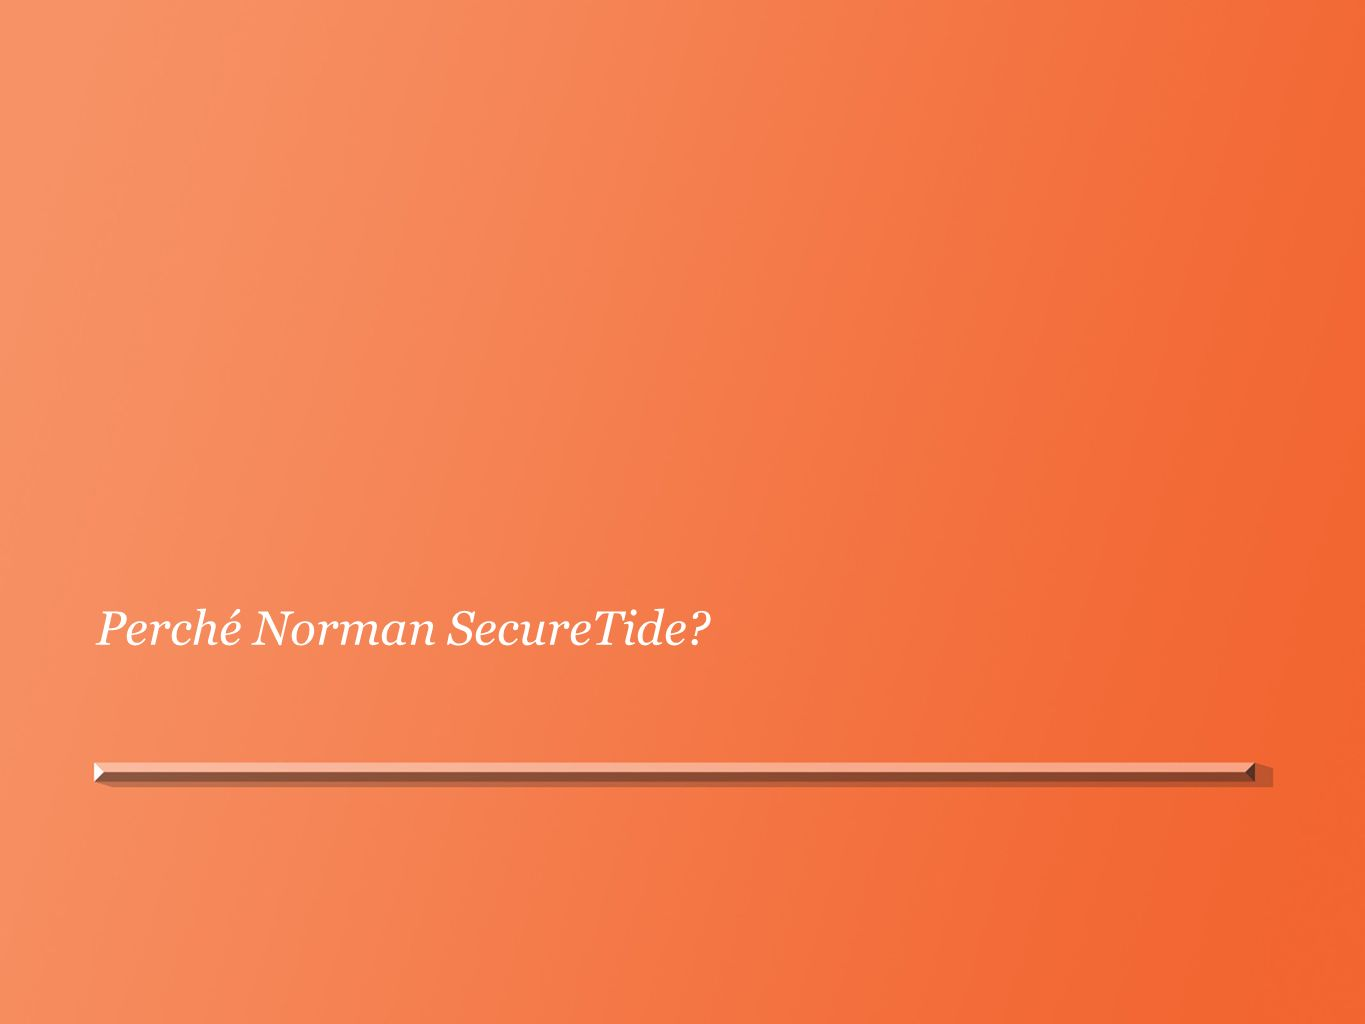 Perché Norman SecureTide?